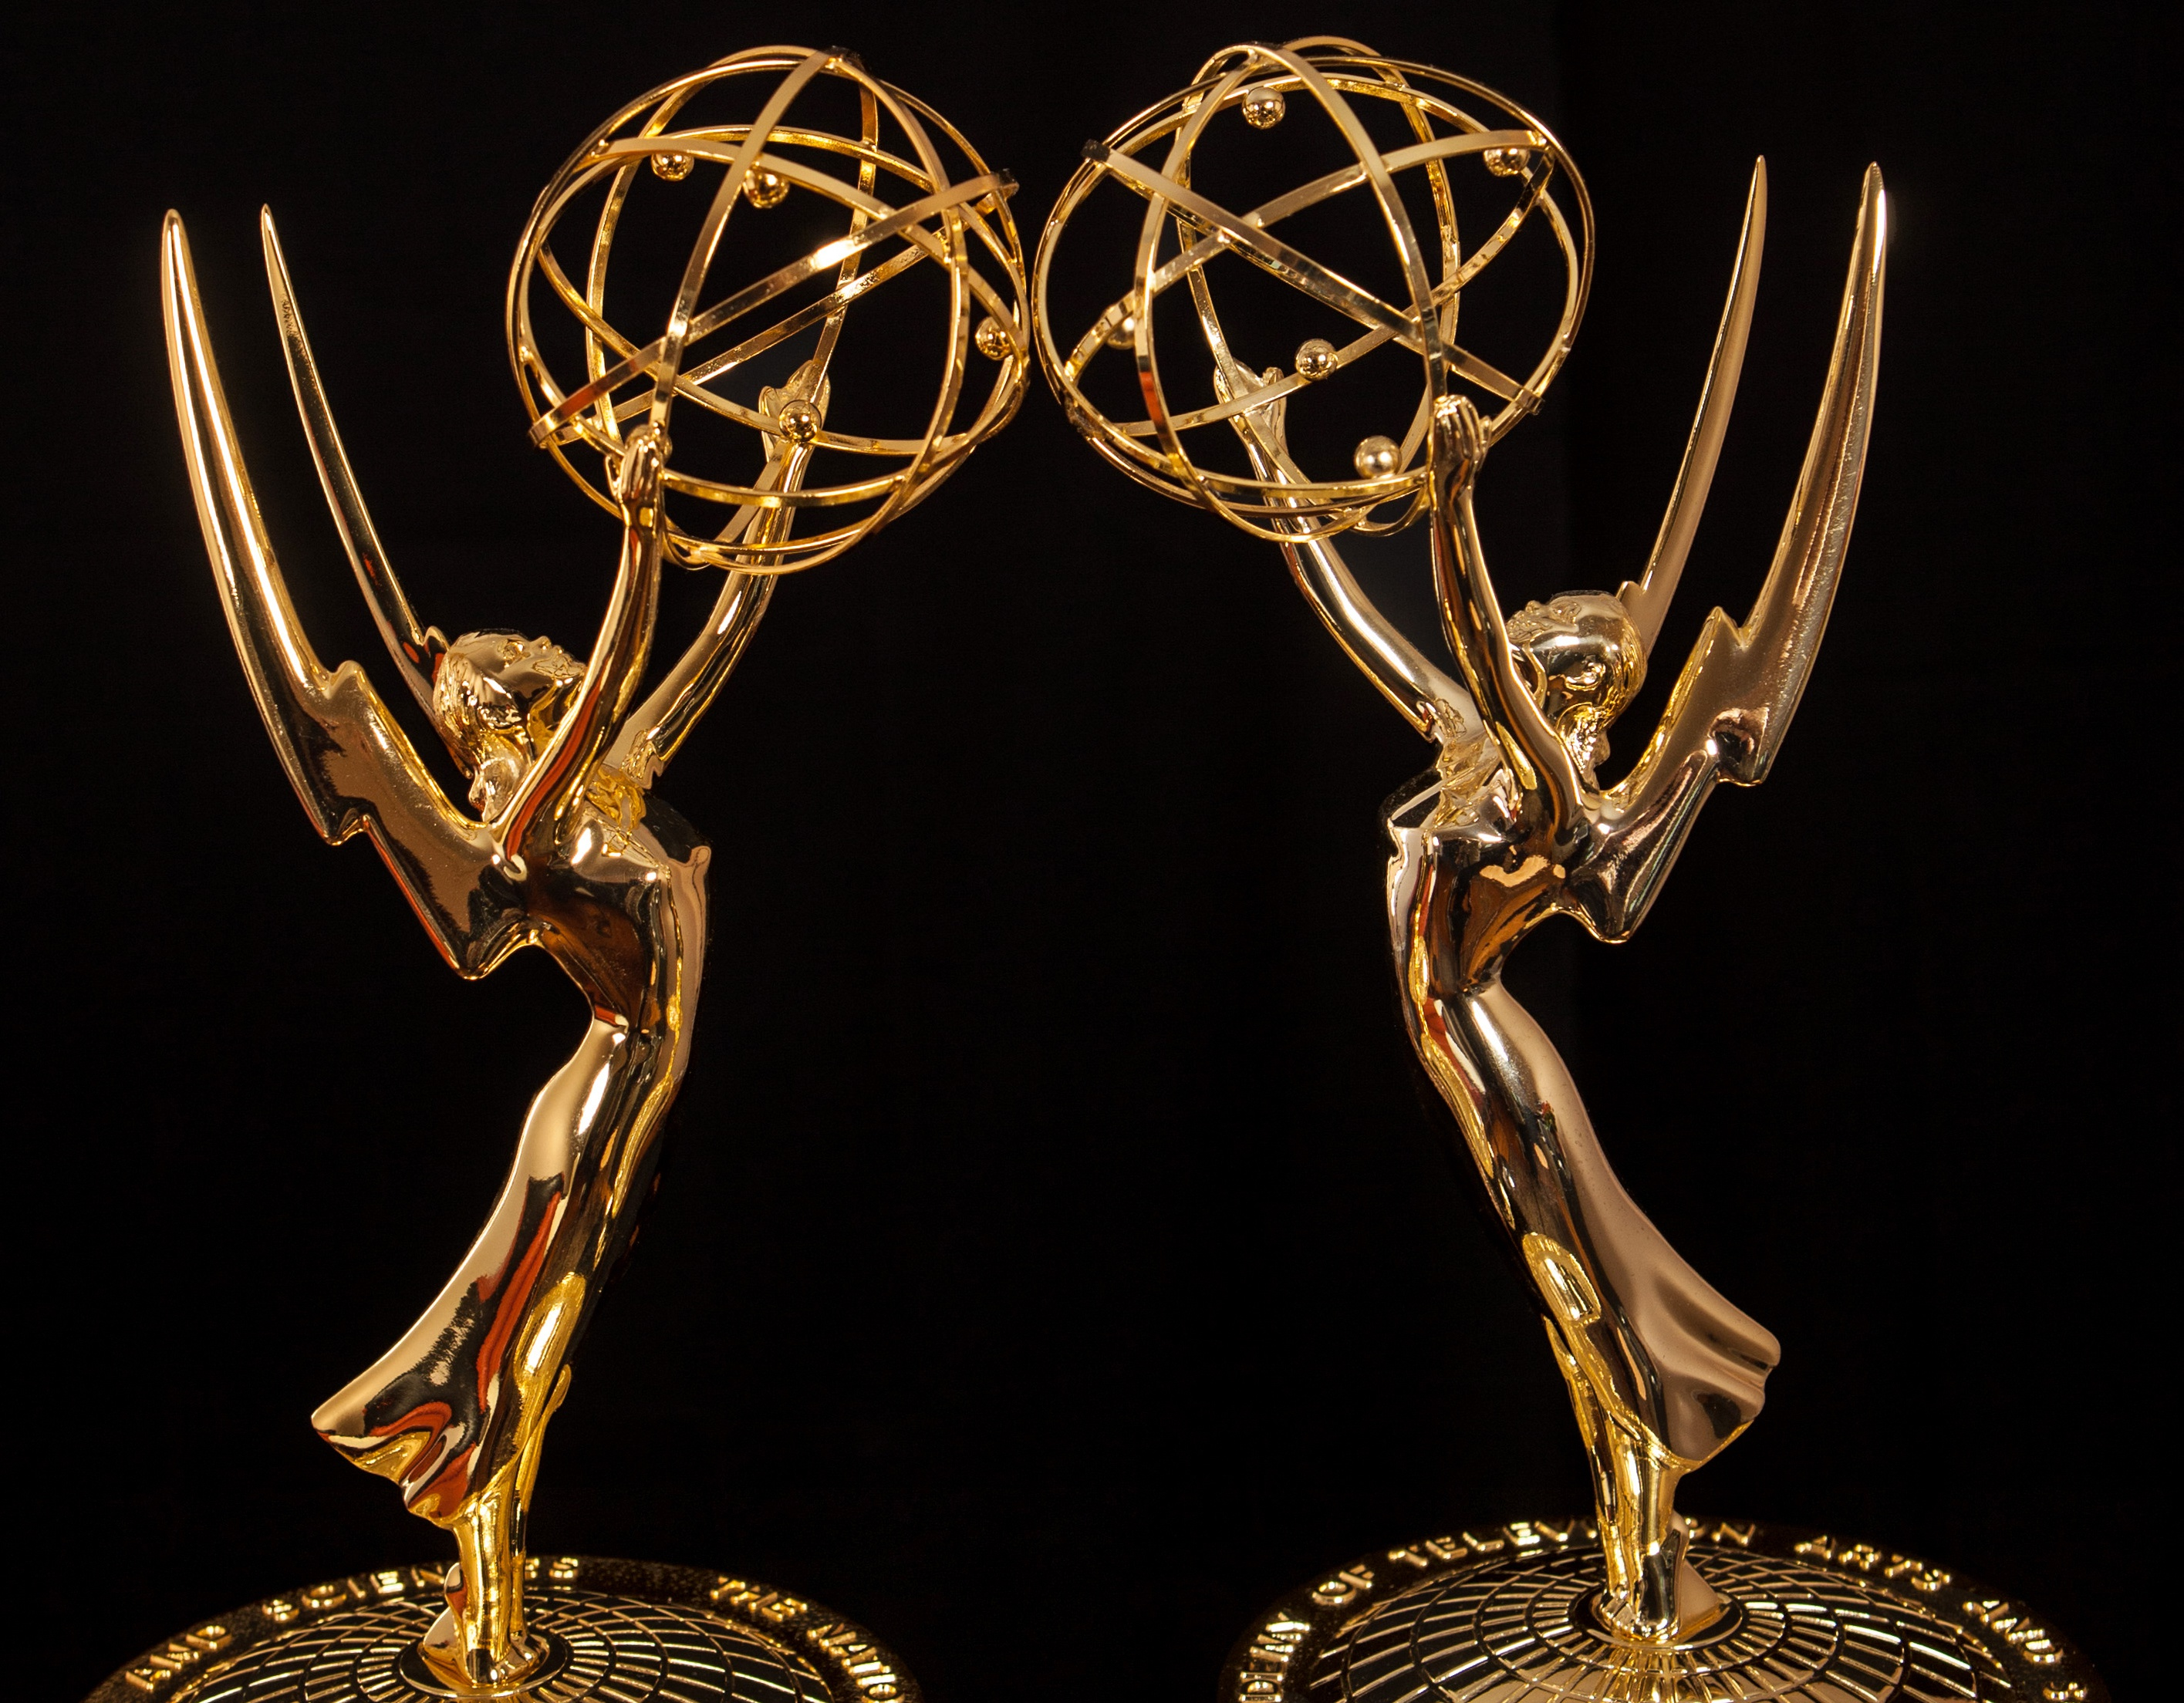 Emmys 2020: Television Academy Updates Calendar + Rule Changes